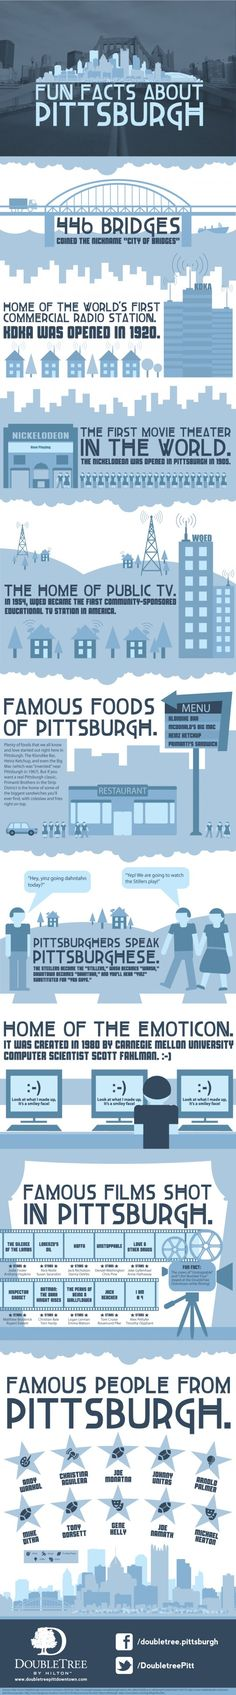 Fun Facts About Pittsburgh, Pennsylvania - While not everyone around the country may realize it, Pittsburgh is the home of many nationally embraced inventions and celebrities. With a long history for innovation and a surprisingly scenic environment given its industrial reputation, Pittsburgh is one of America's best kept secrets